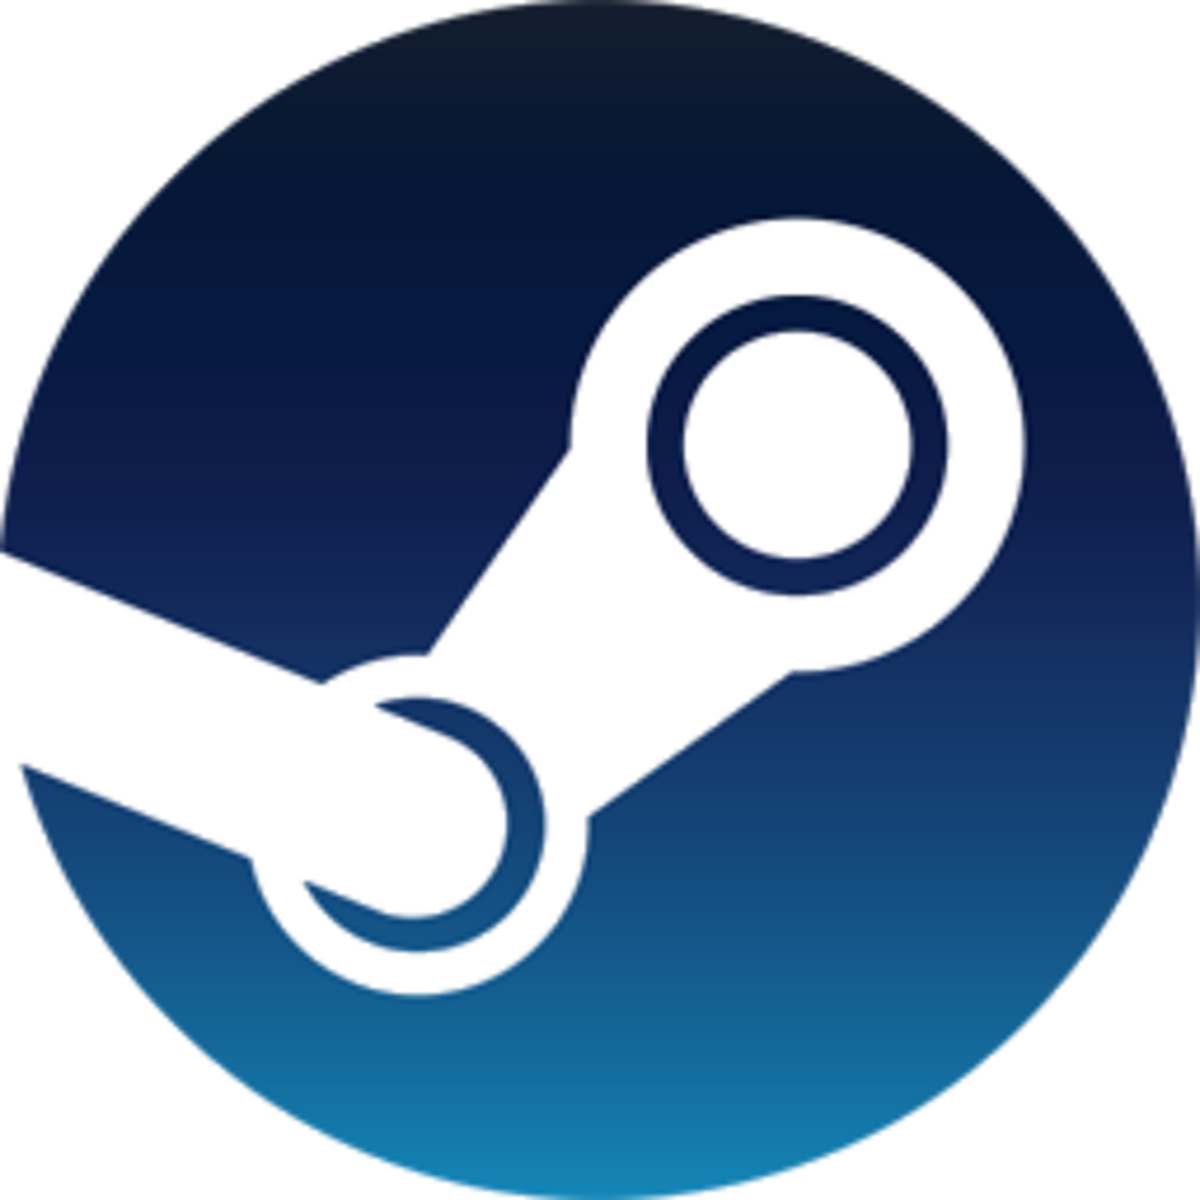 9 Steam Alternatives - Sites Like Steam To Buy PC Games Online